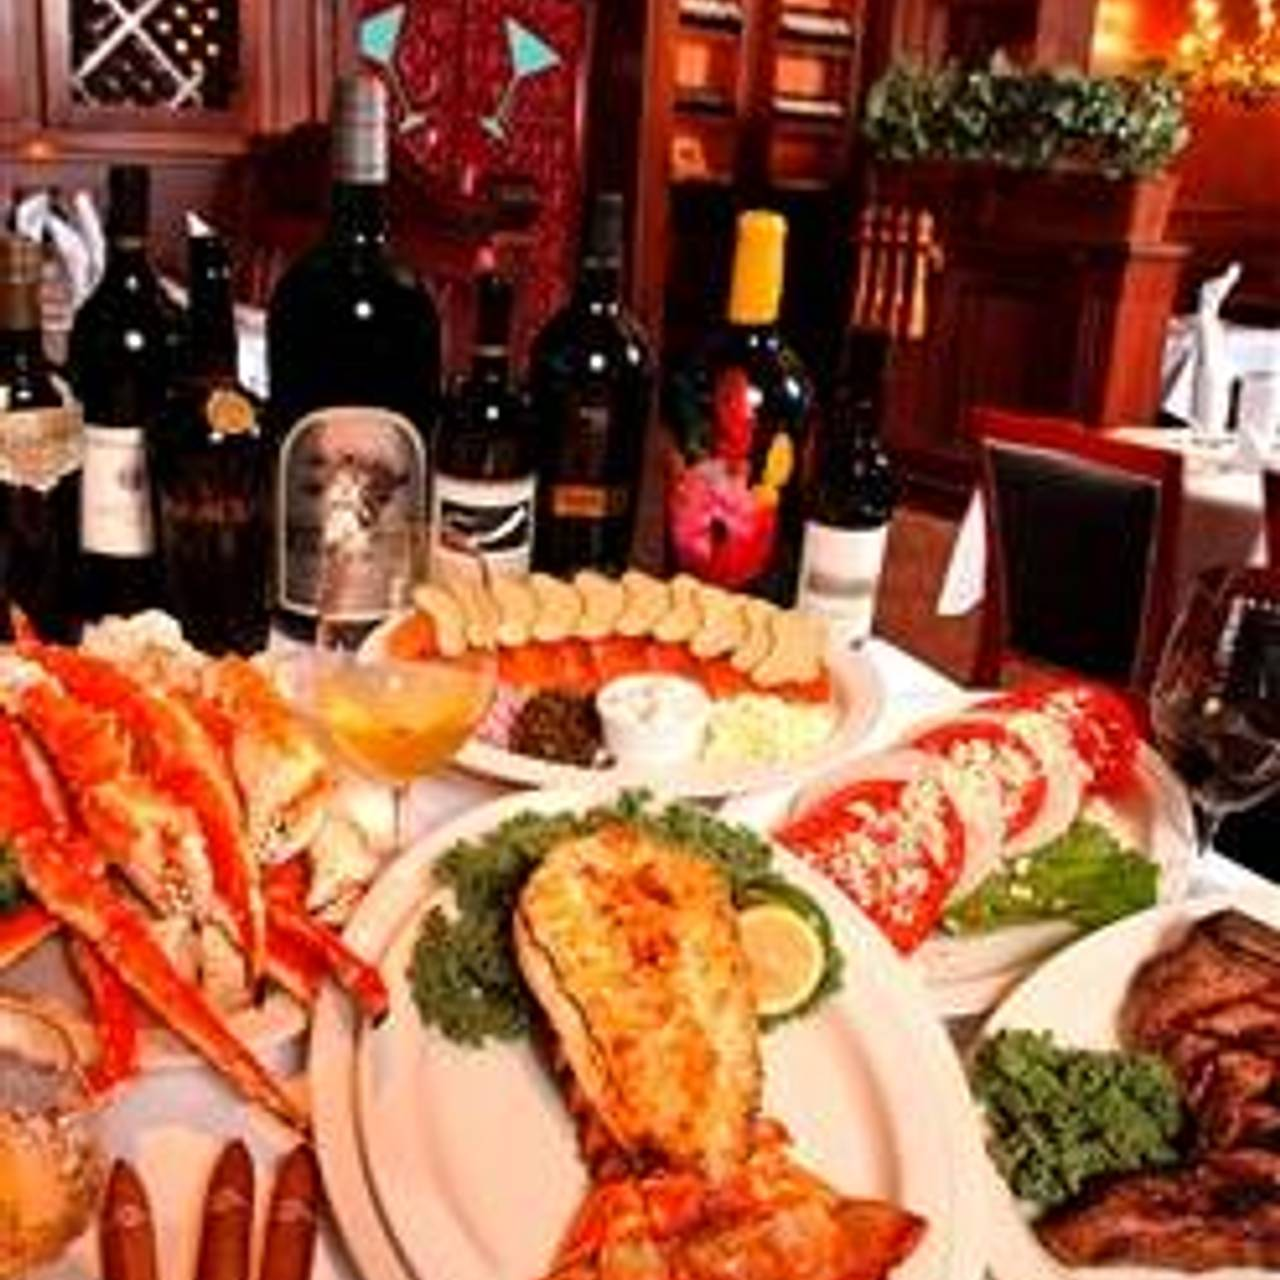 Charley S Steak House And Seafood Grille Kissimmee Fl